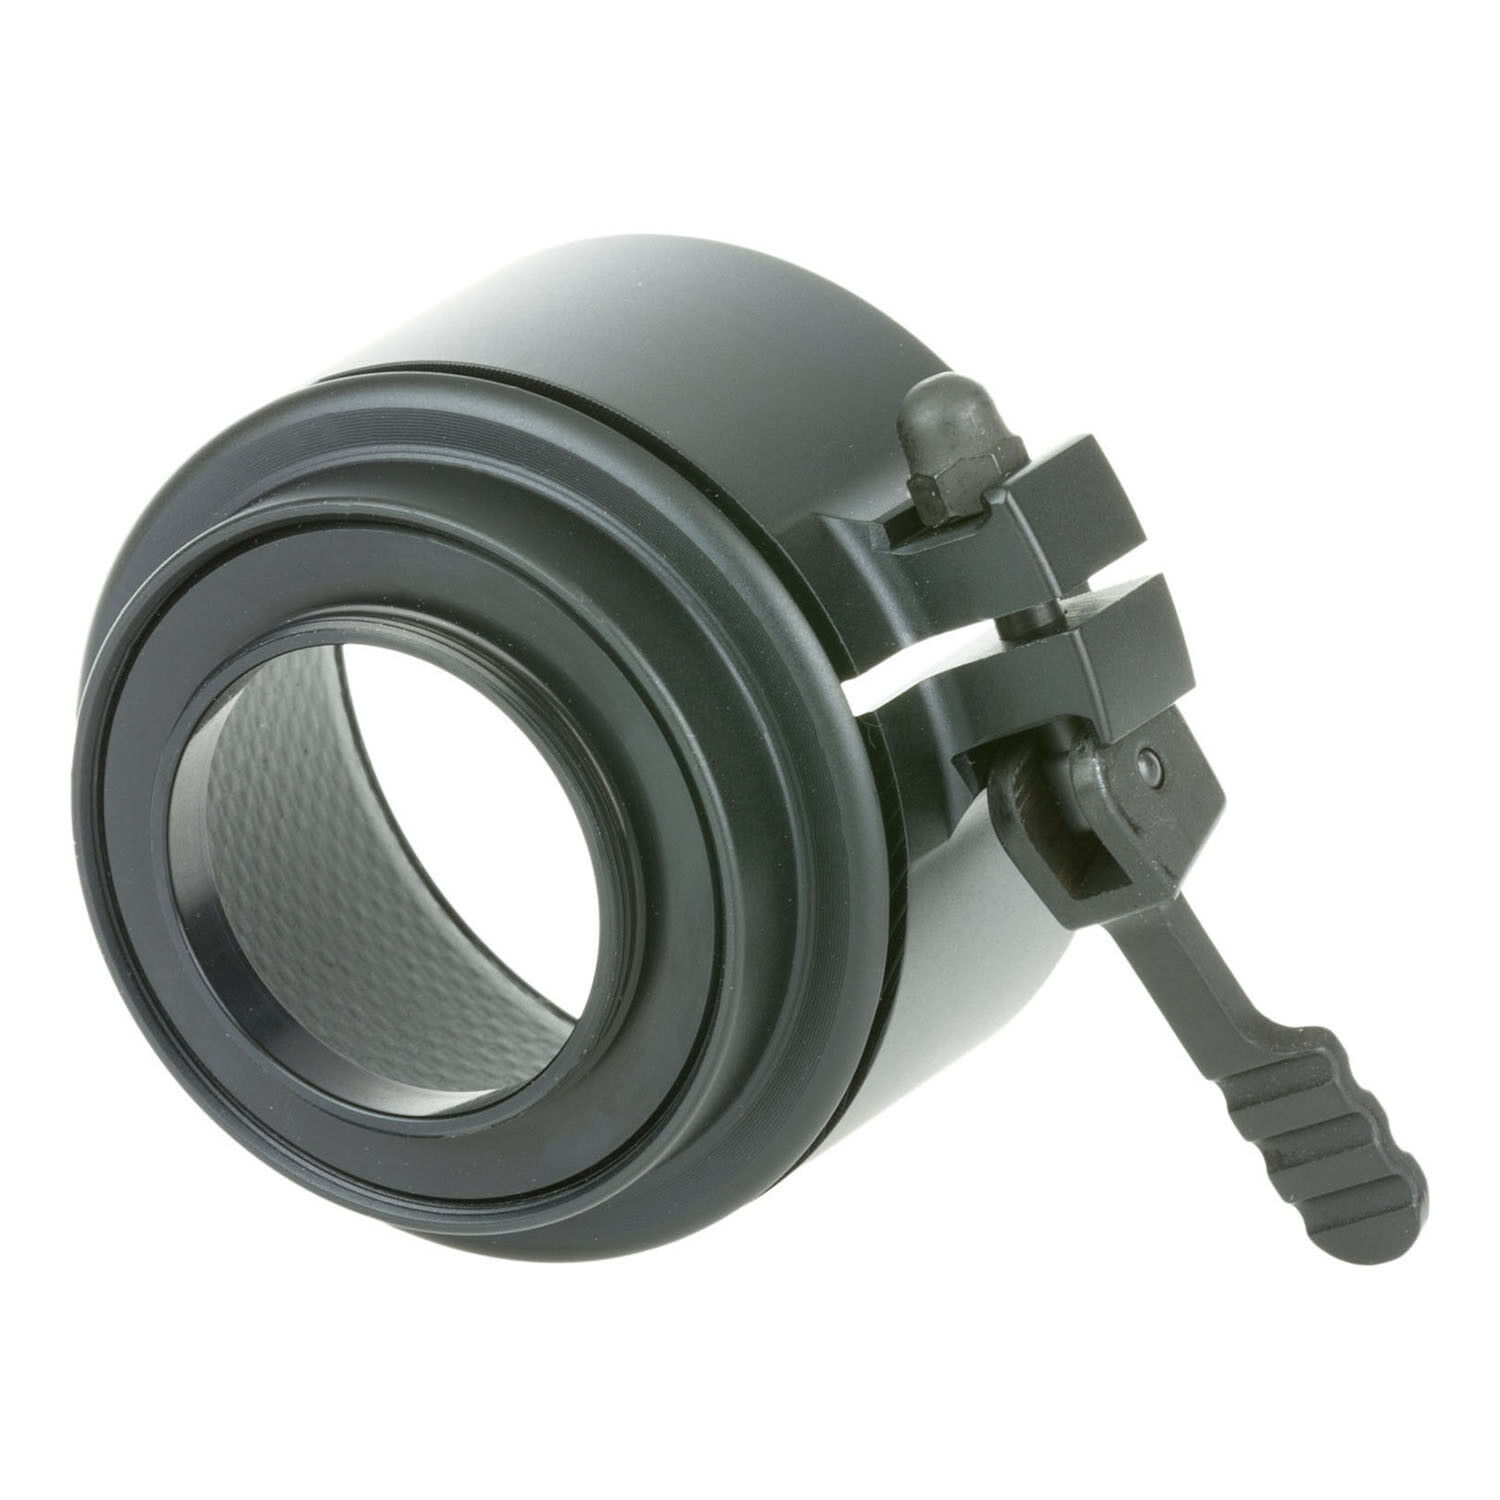 Nightspotter Universal Adapter petit 30-67mm for night vision device NS device Eyepiece